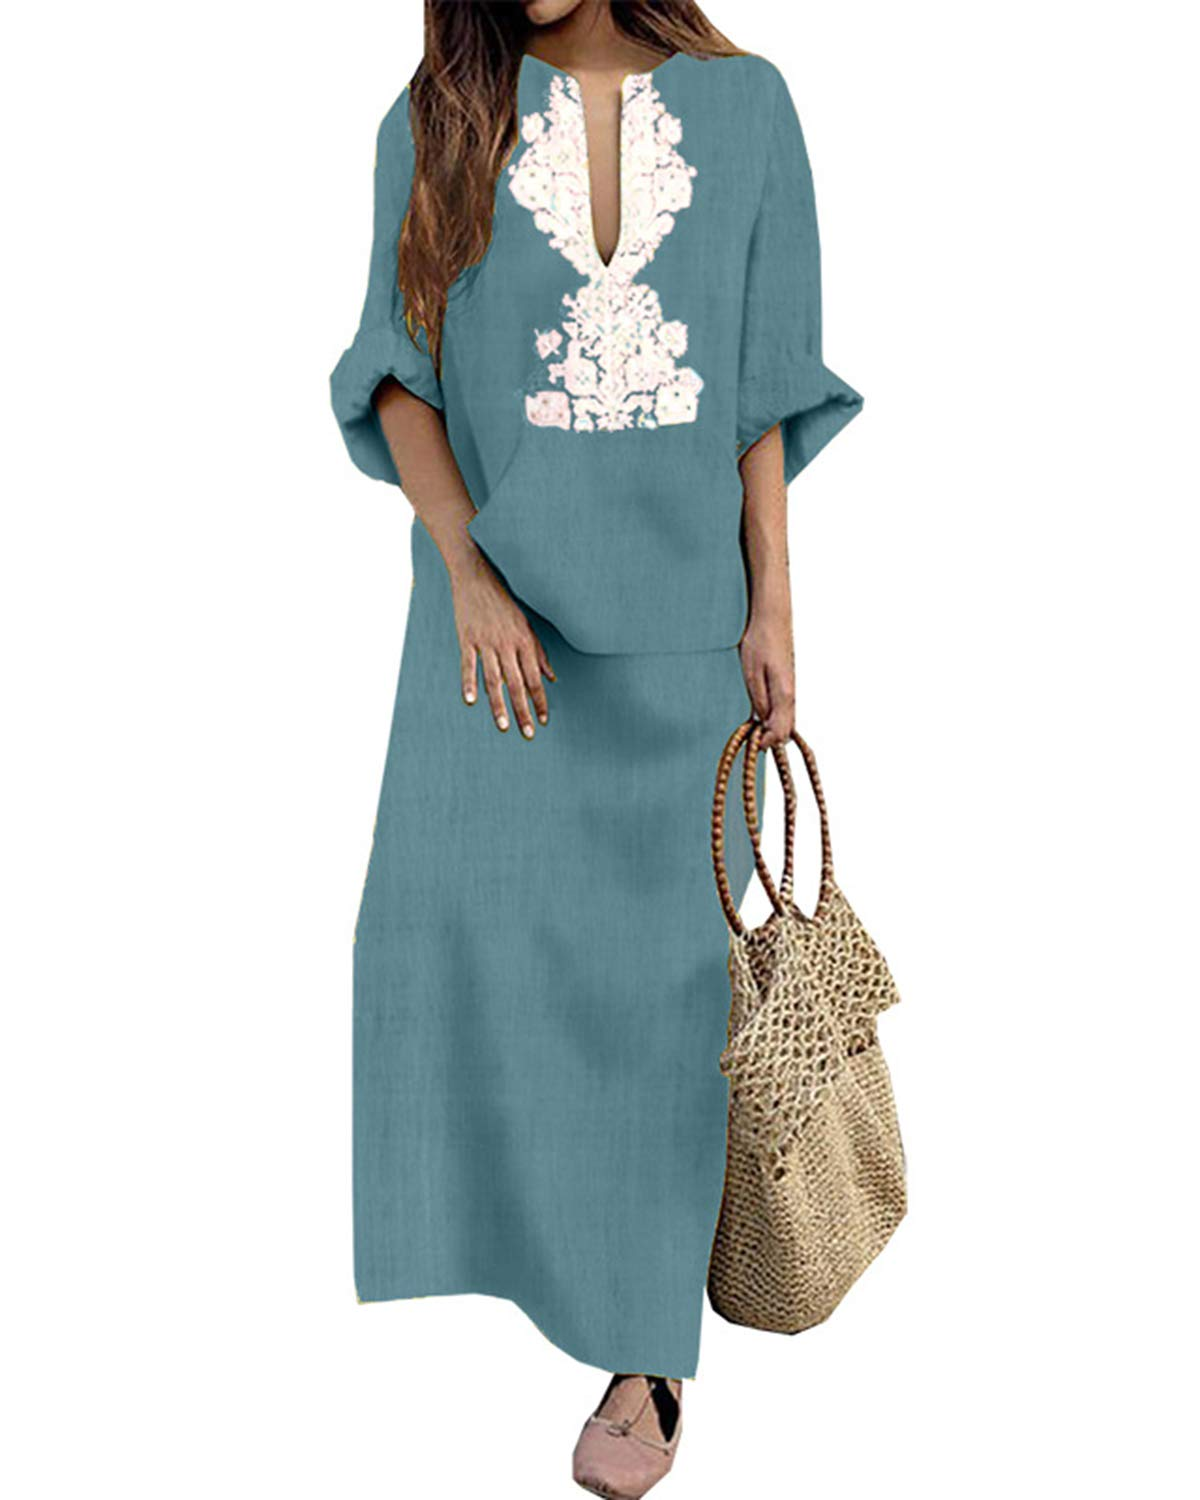 Jacansi Women's Ethnic Printed Long Sleeve V-Neck Cotton Linen Maxi Dress Light Blue #1XL by Jacansi (Image #1)